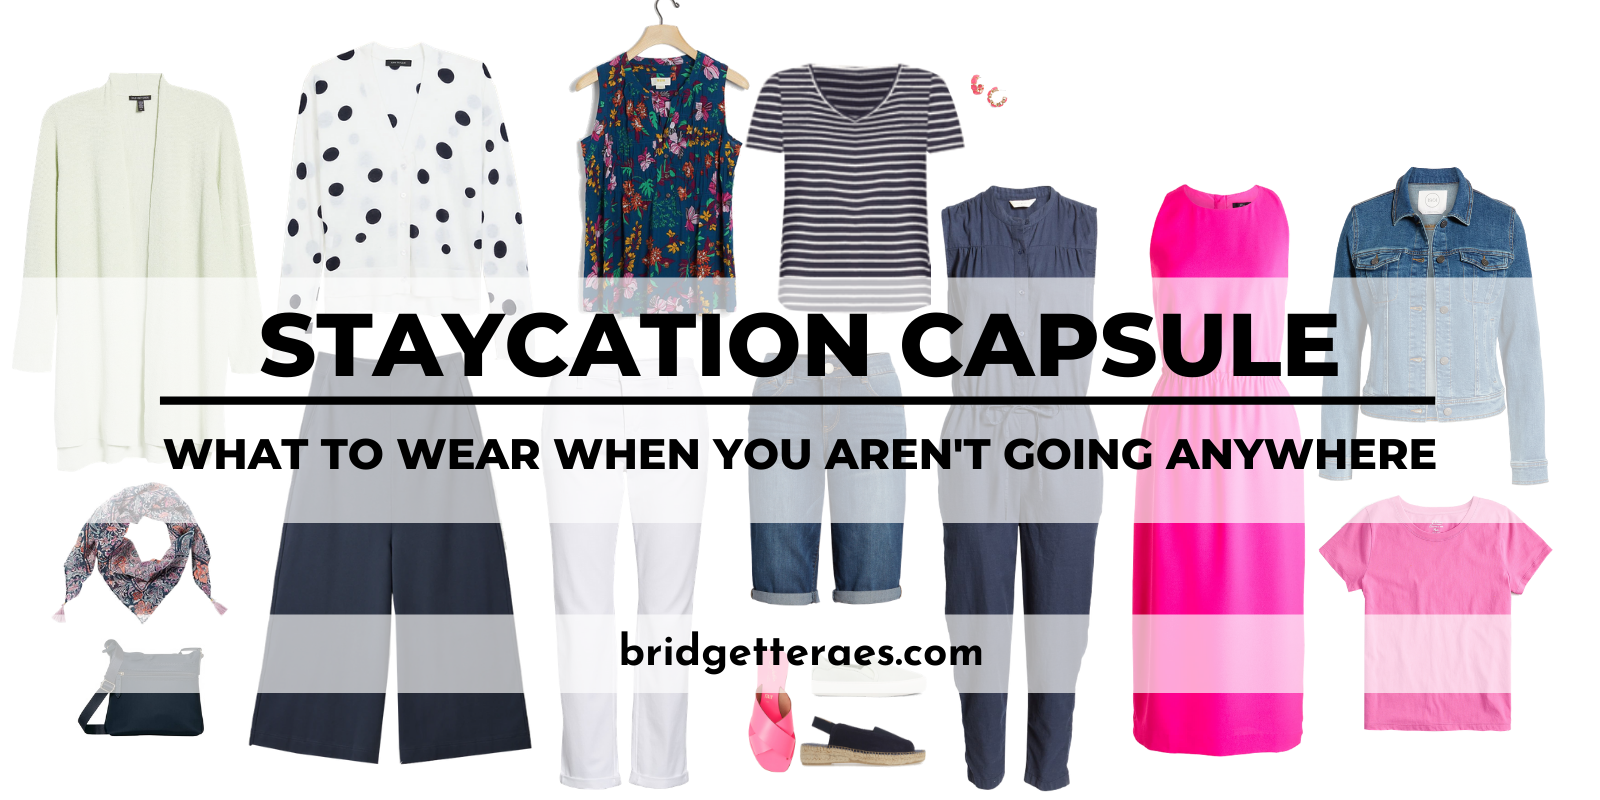 Staycation Capsule: What to Wear When You Aren't Going Anywhere